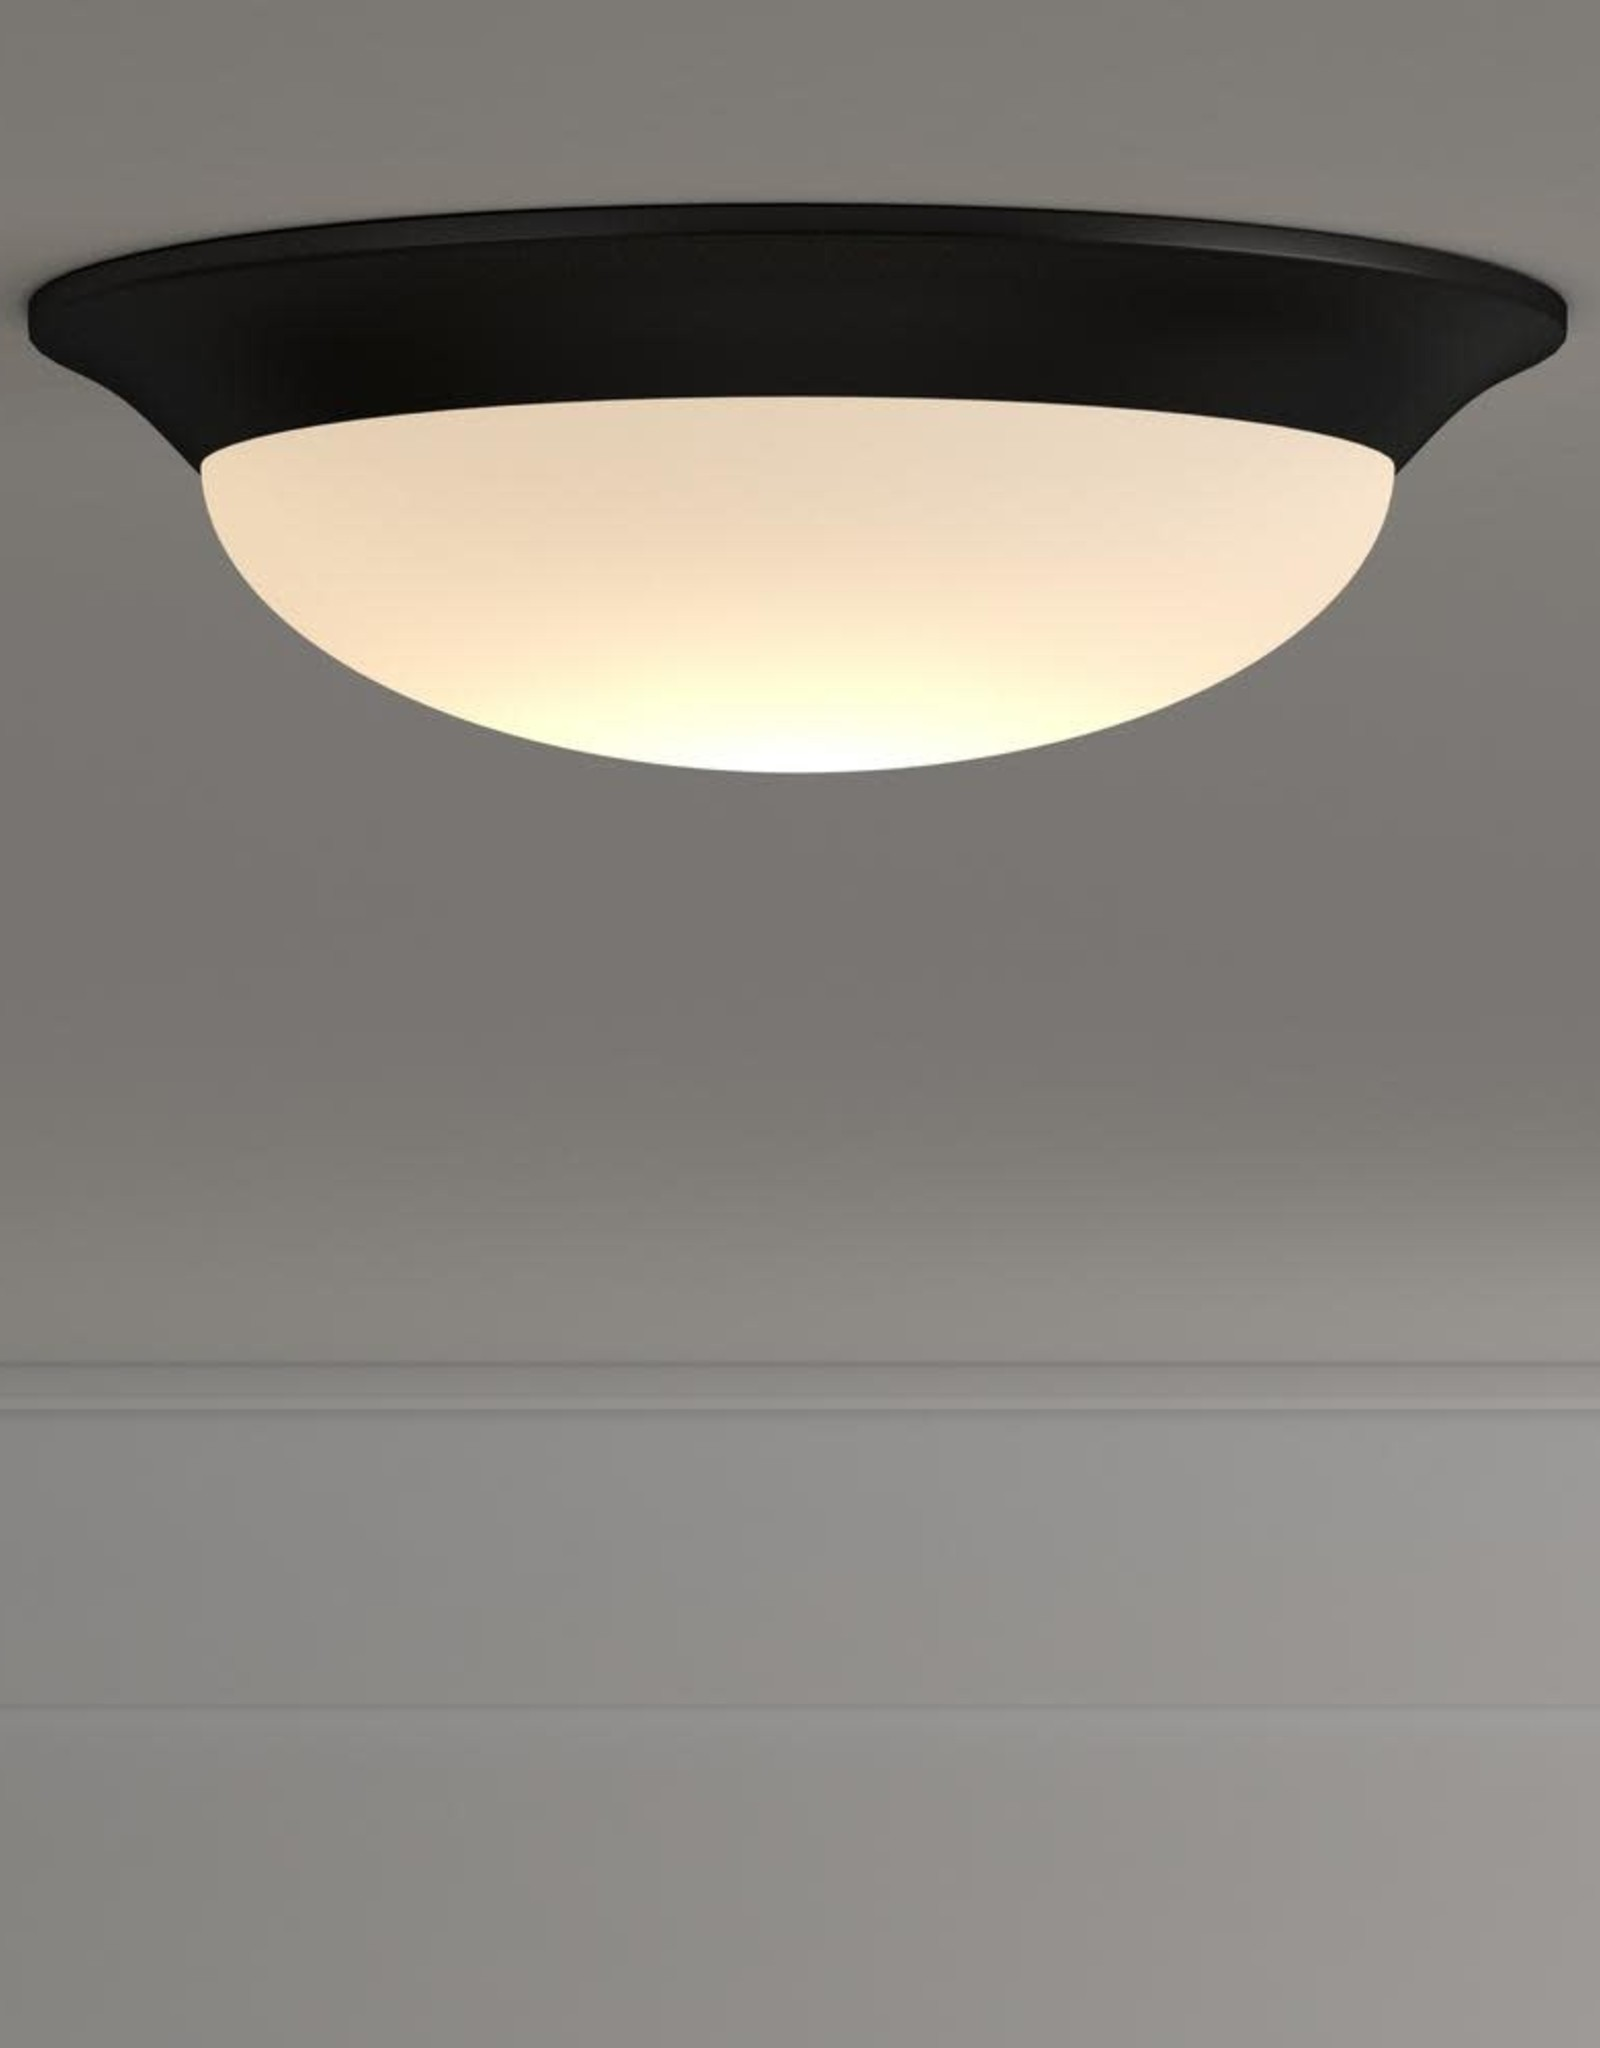 Commercial Electric 11 in. 120-Watt Equivalent Satin Bronze Integrated LED Flush Mount with Frosted White Glass Shade